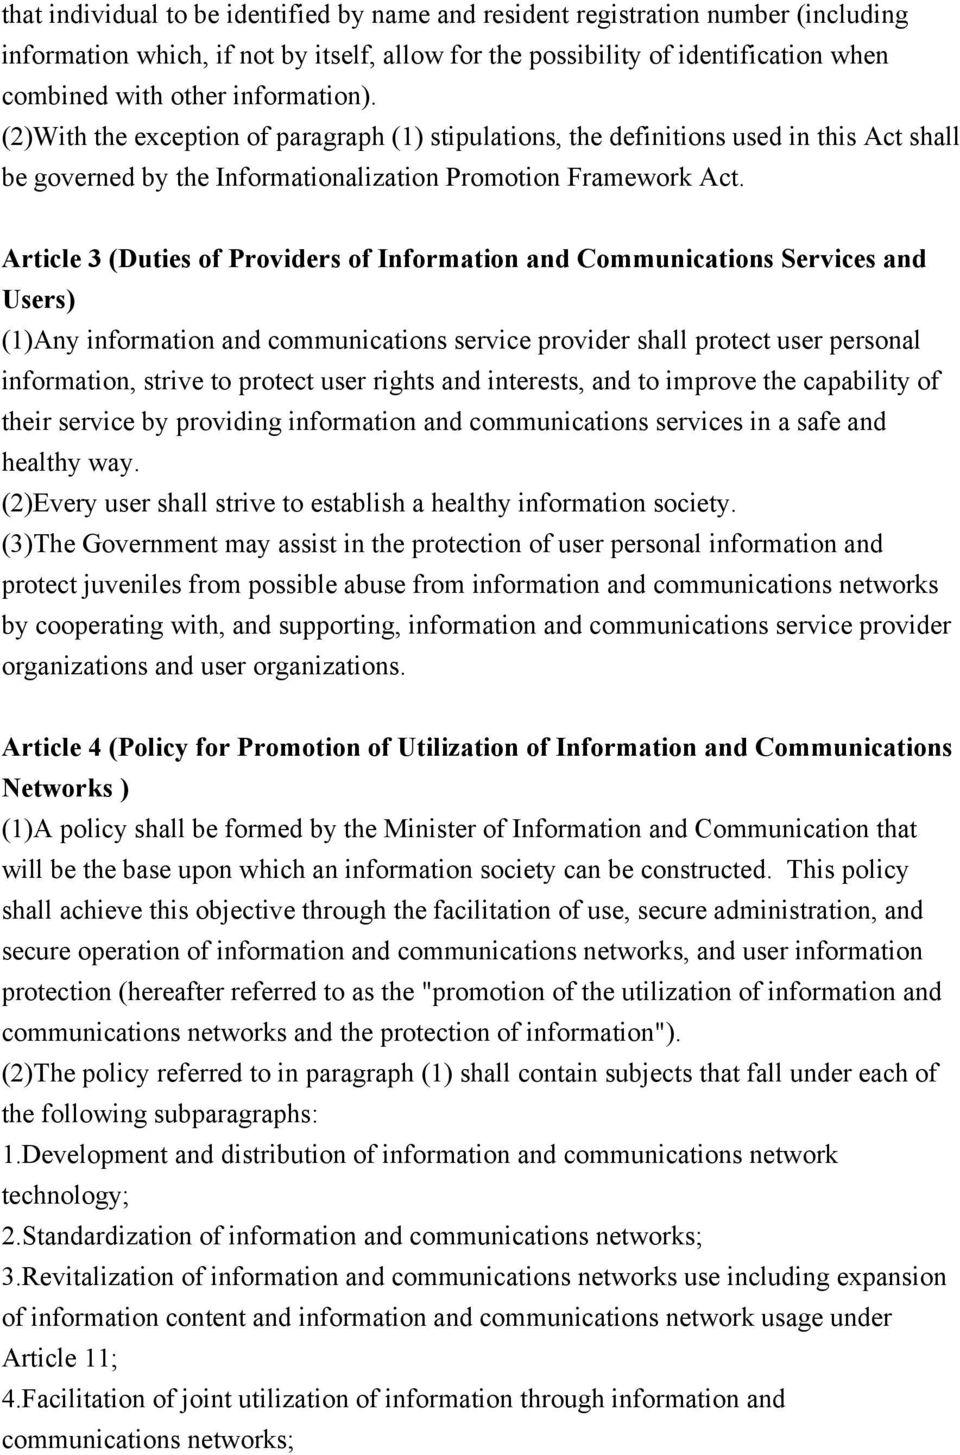 Article 3 (Duties of Providers of Information and Communications Services and Users) (1)Any information and communications service provider shall protect user personal information, strive to protect